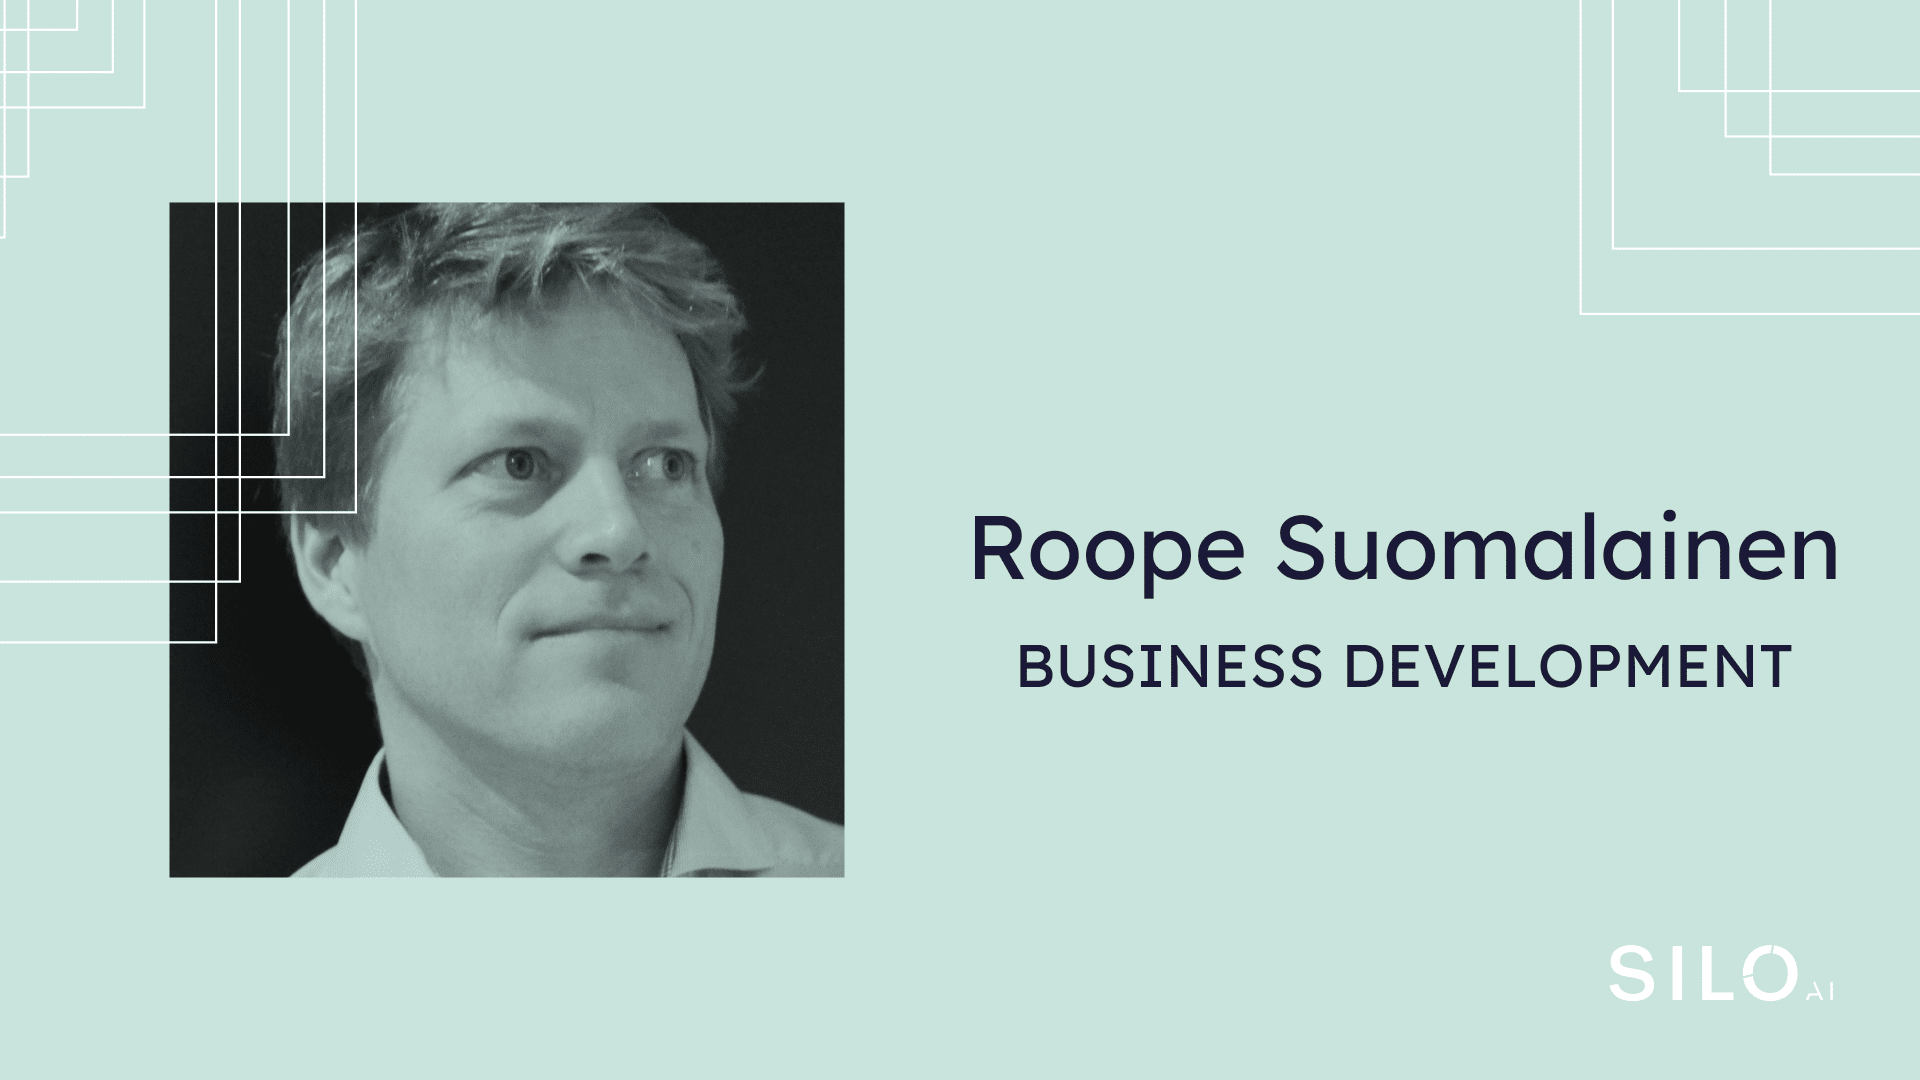 Roope Suomalainen joins Silo AI to drive long-term partnerships for smart devices and networks